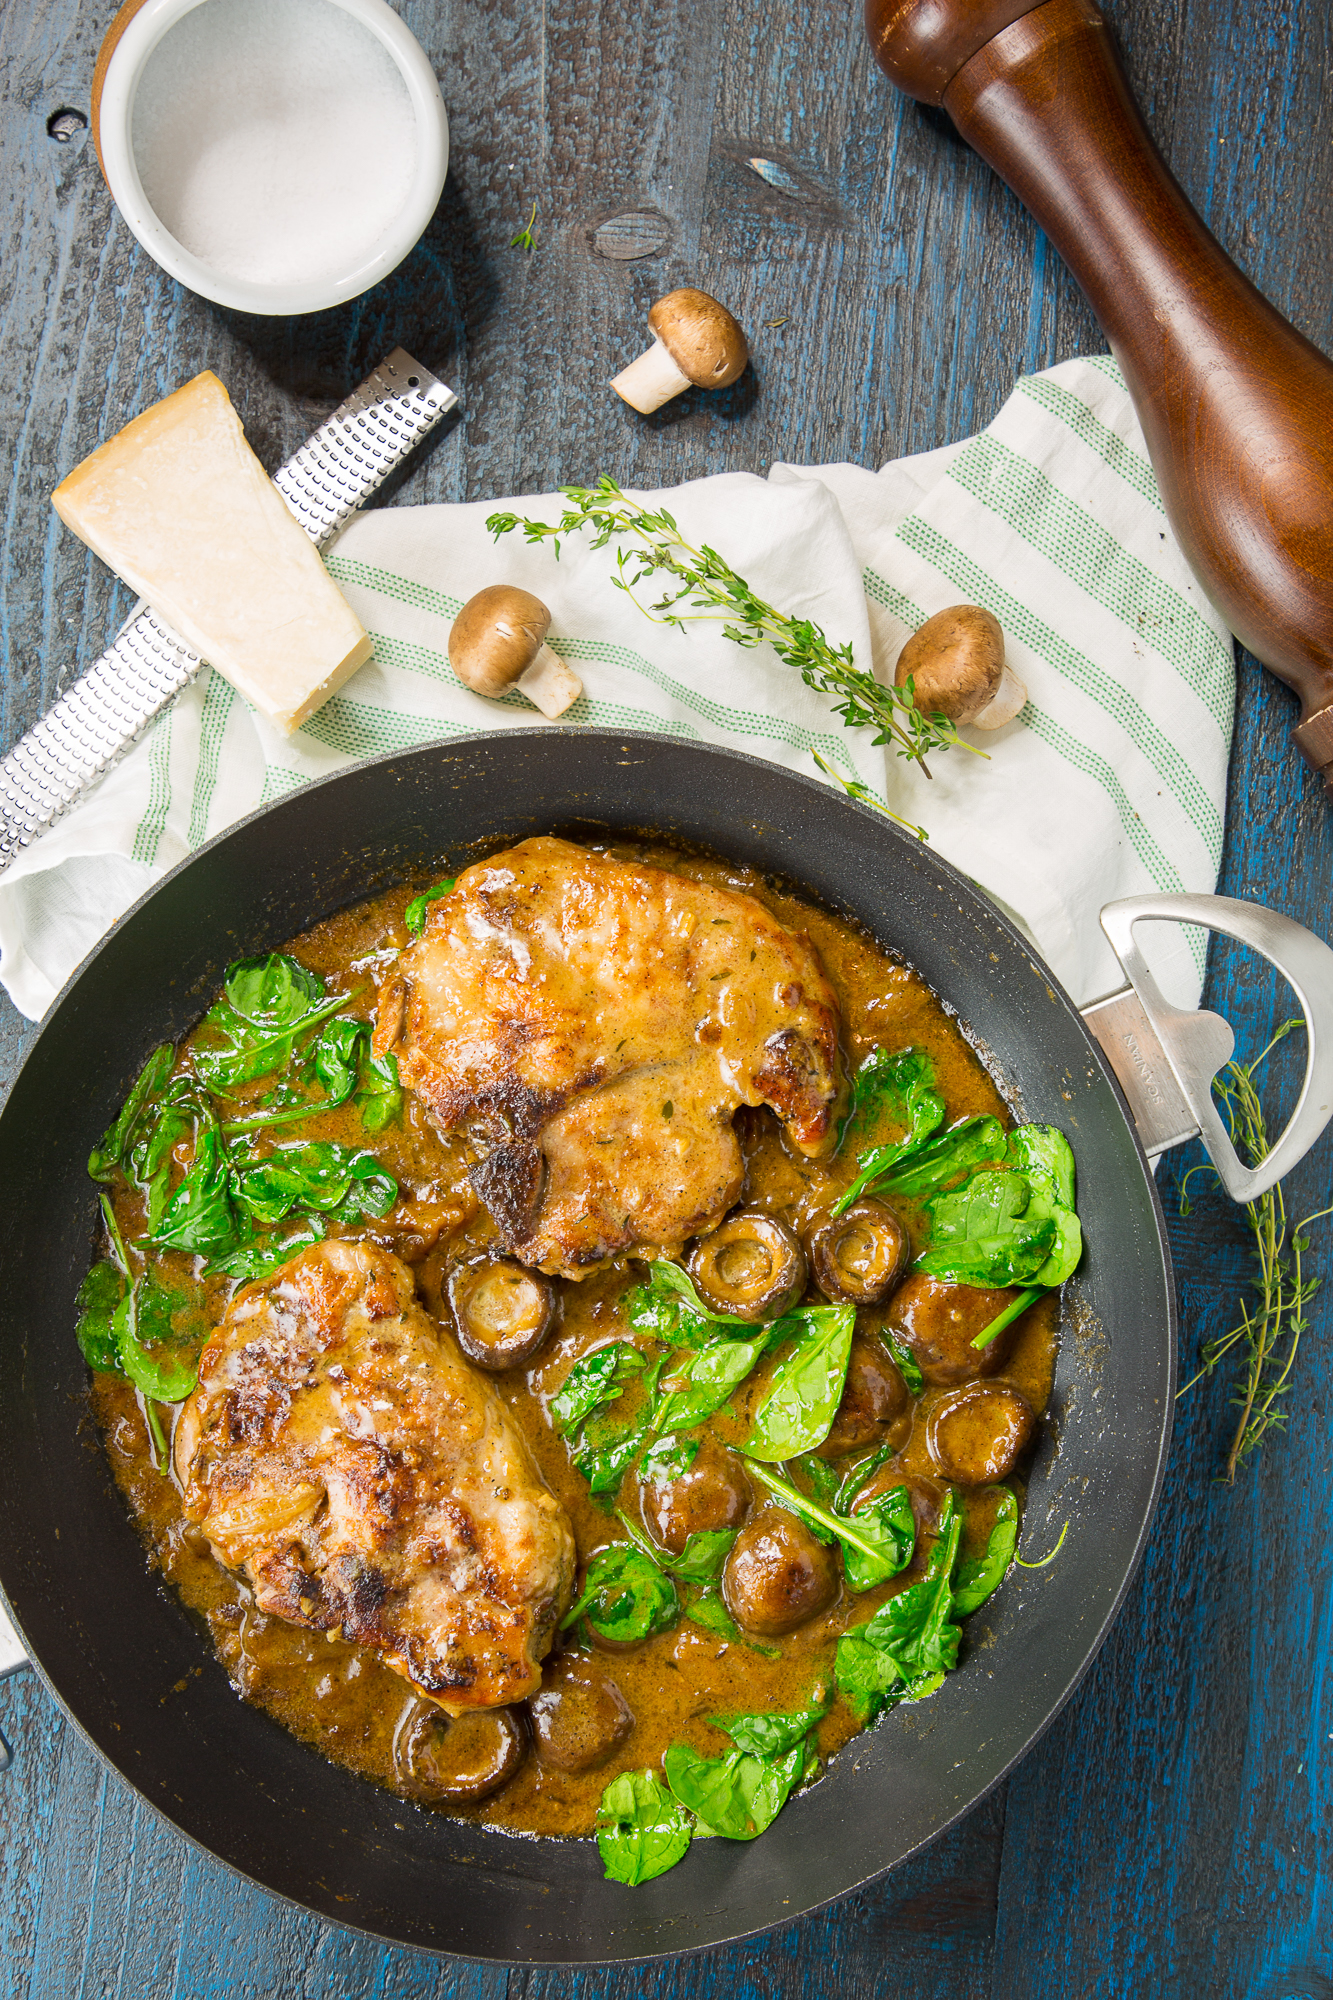 Pork Chops with Mushroom Gravy in a Chef Pan